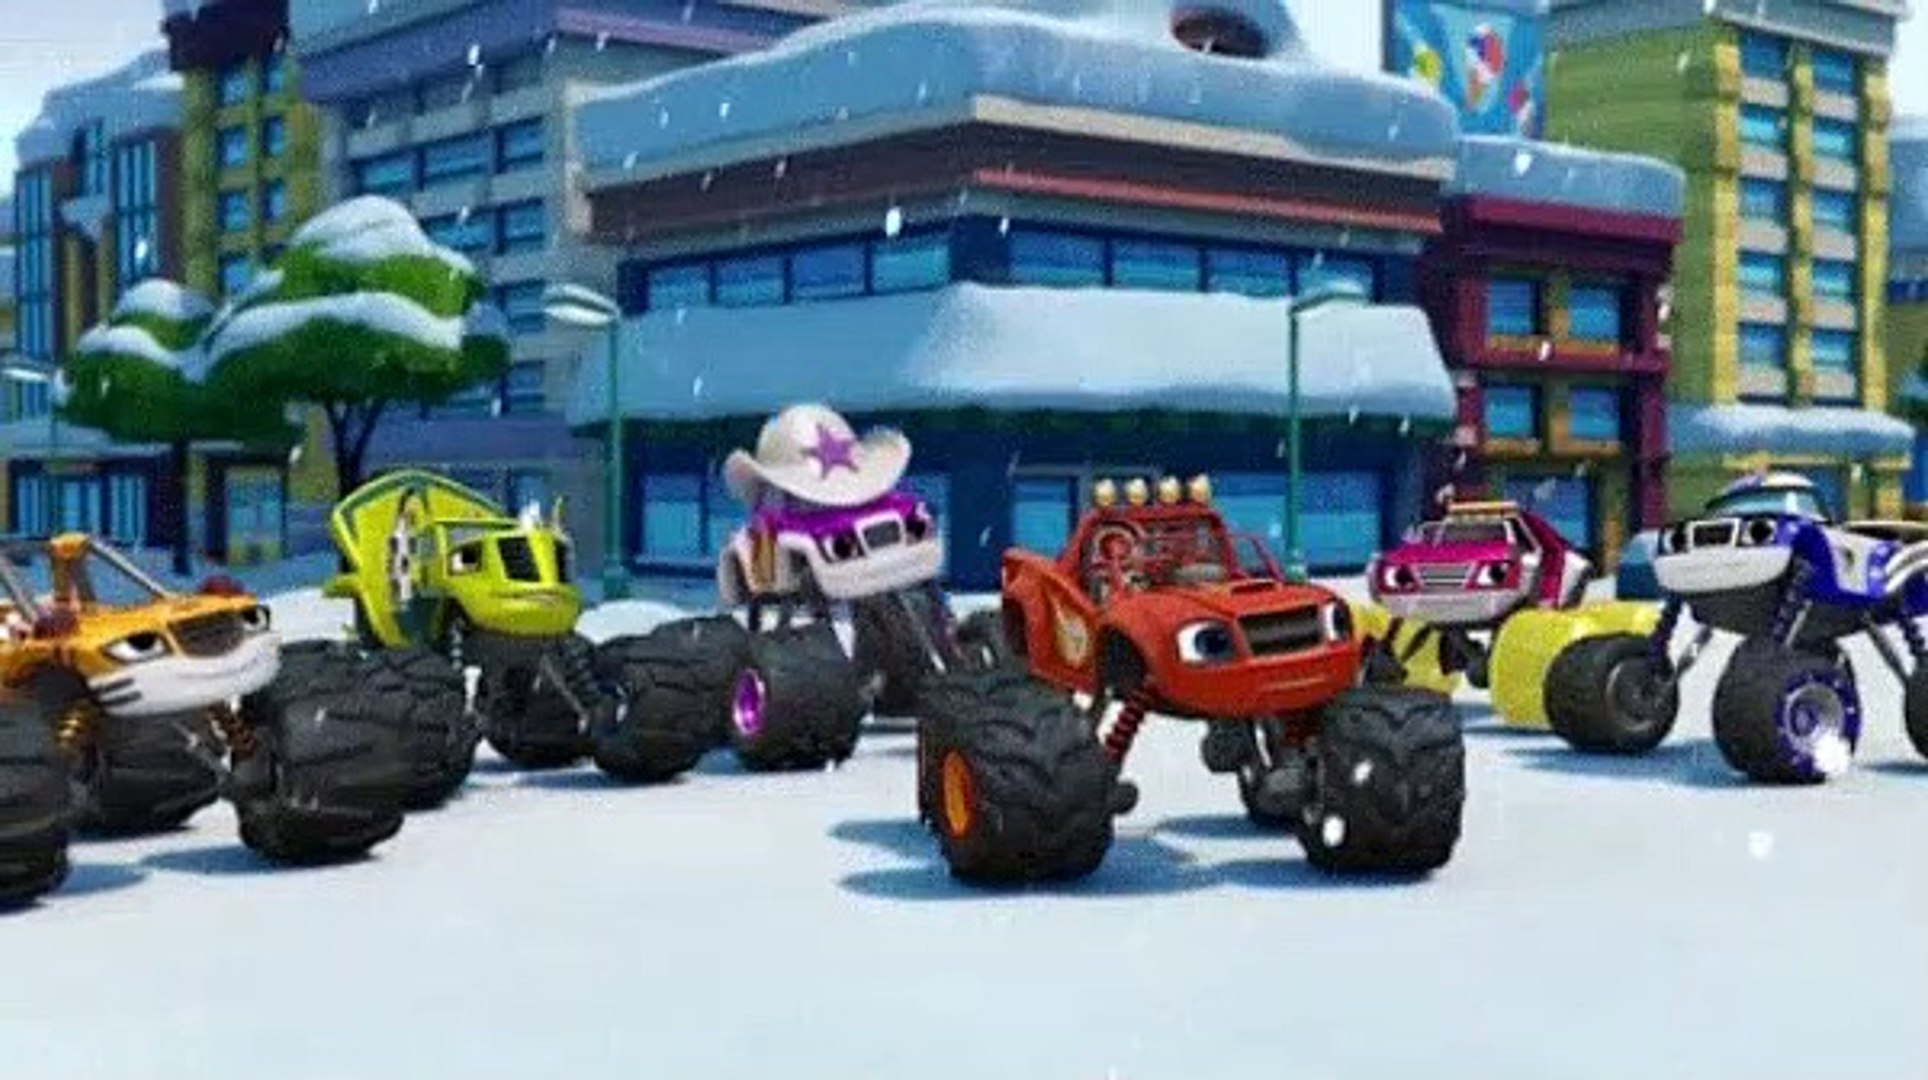 Blaze And The Monster Machines S04e12 Snow Day Showdown